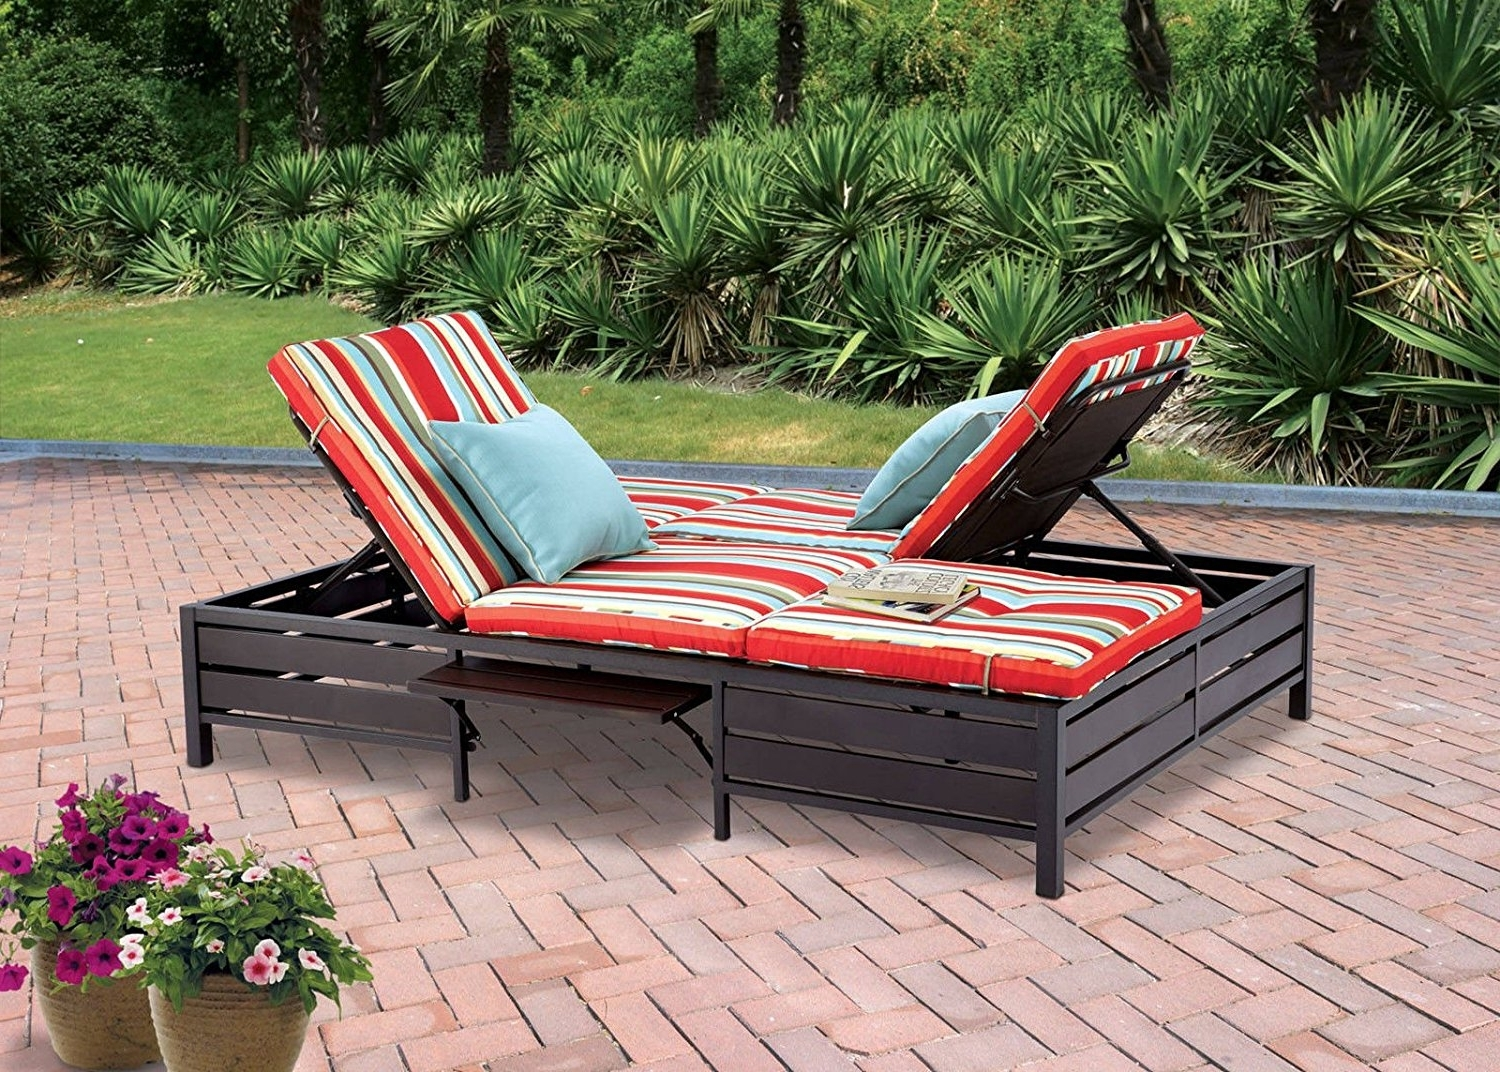 Amazon : Double Chaise Lounger – This Red Stripe Outdoor Pertaining To Newest Chaise Lounge Sun Chairs (View 1 of 15)